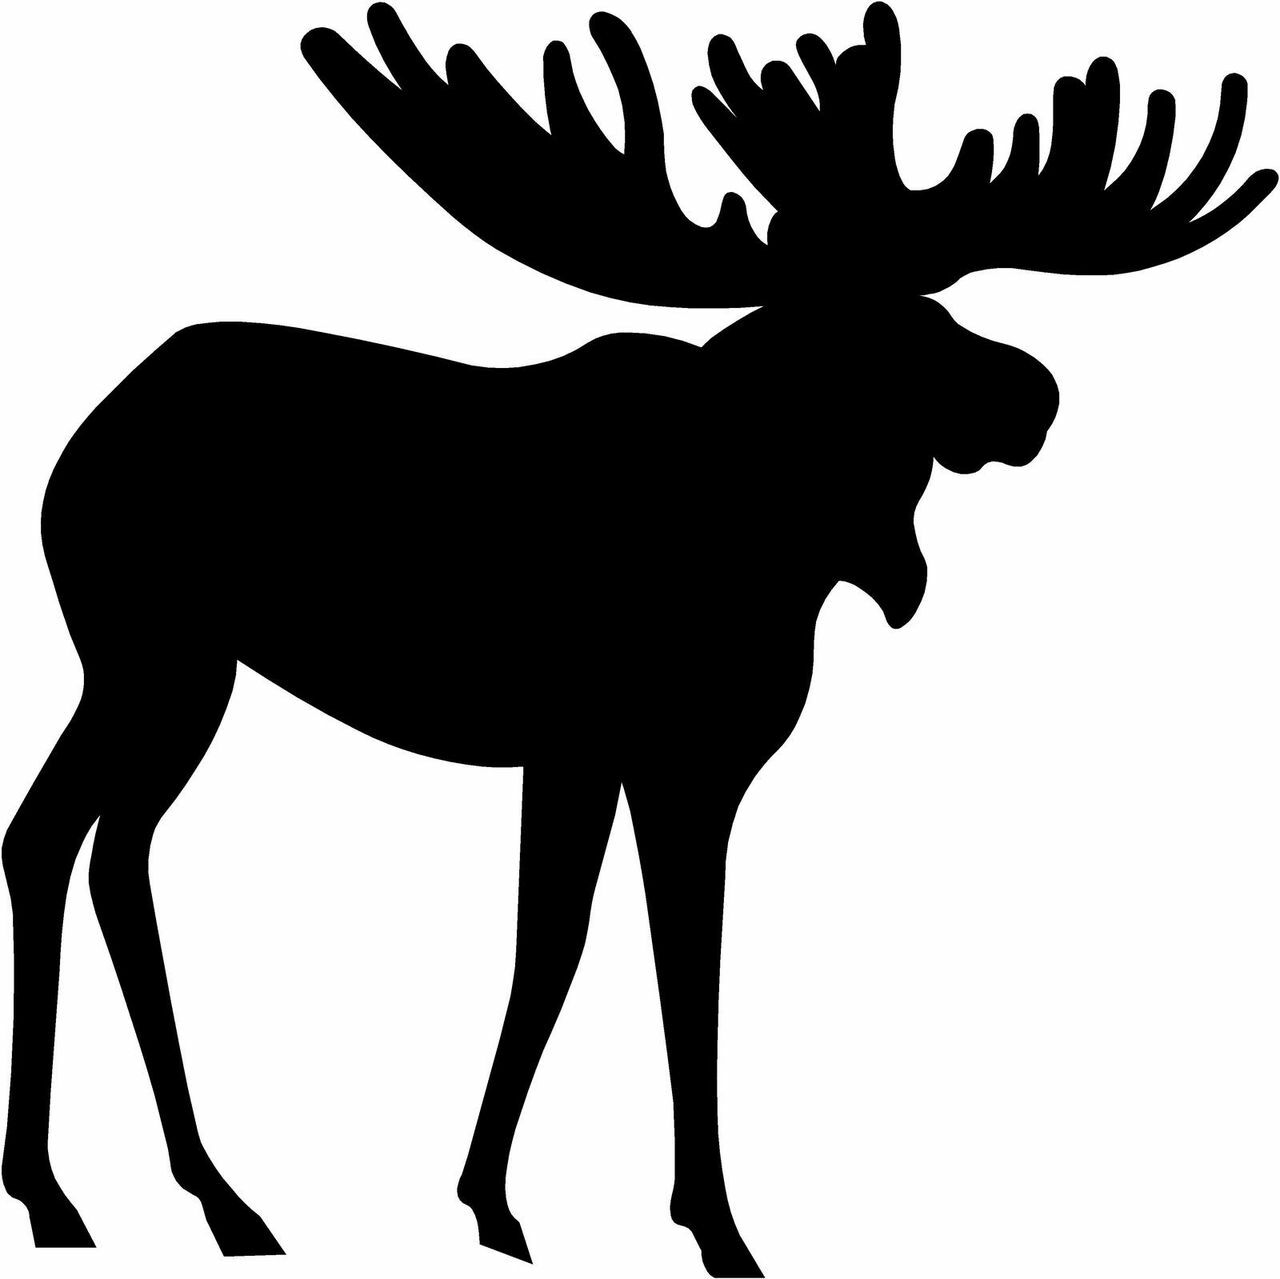 moose silhouette quotmoose silhouettequot by collins11 redbubble silhouette moose